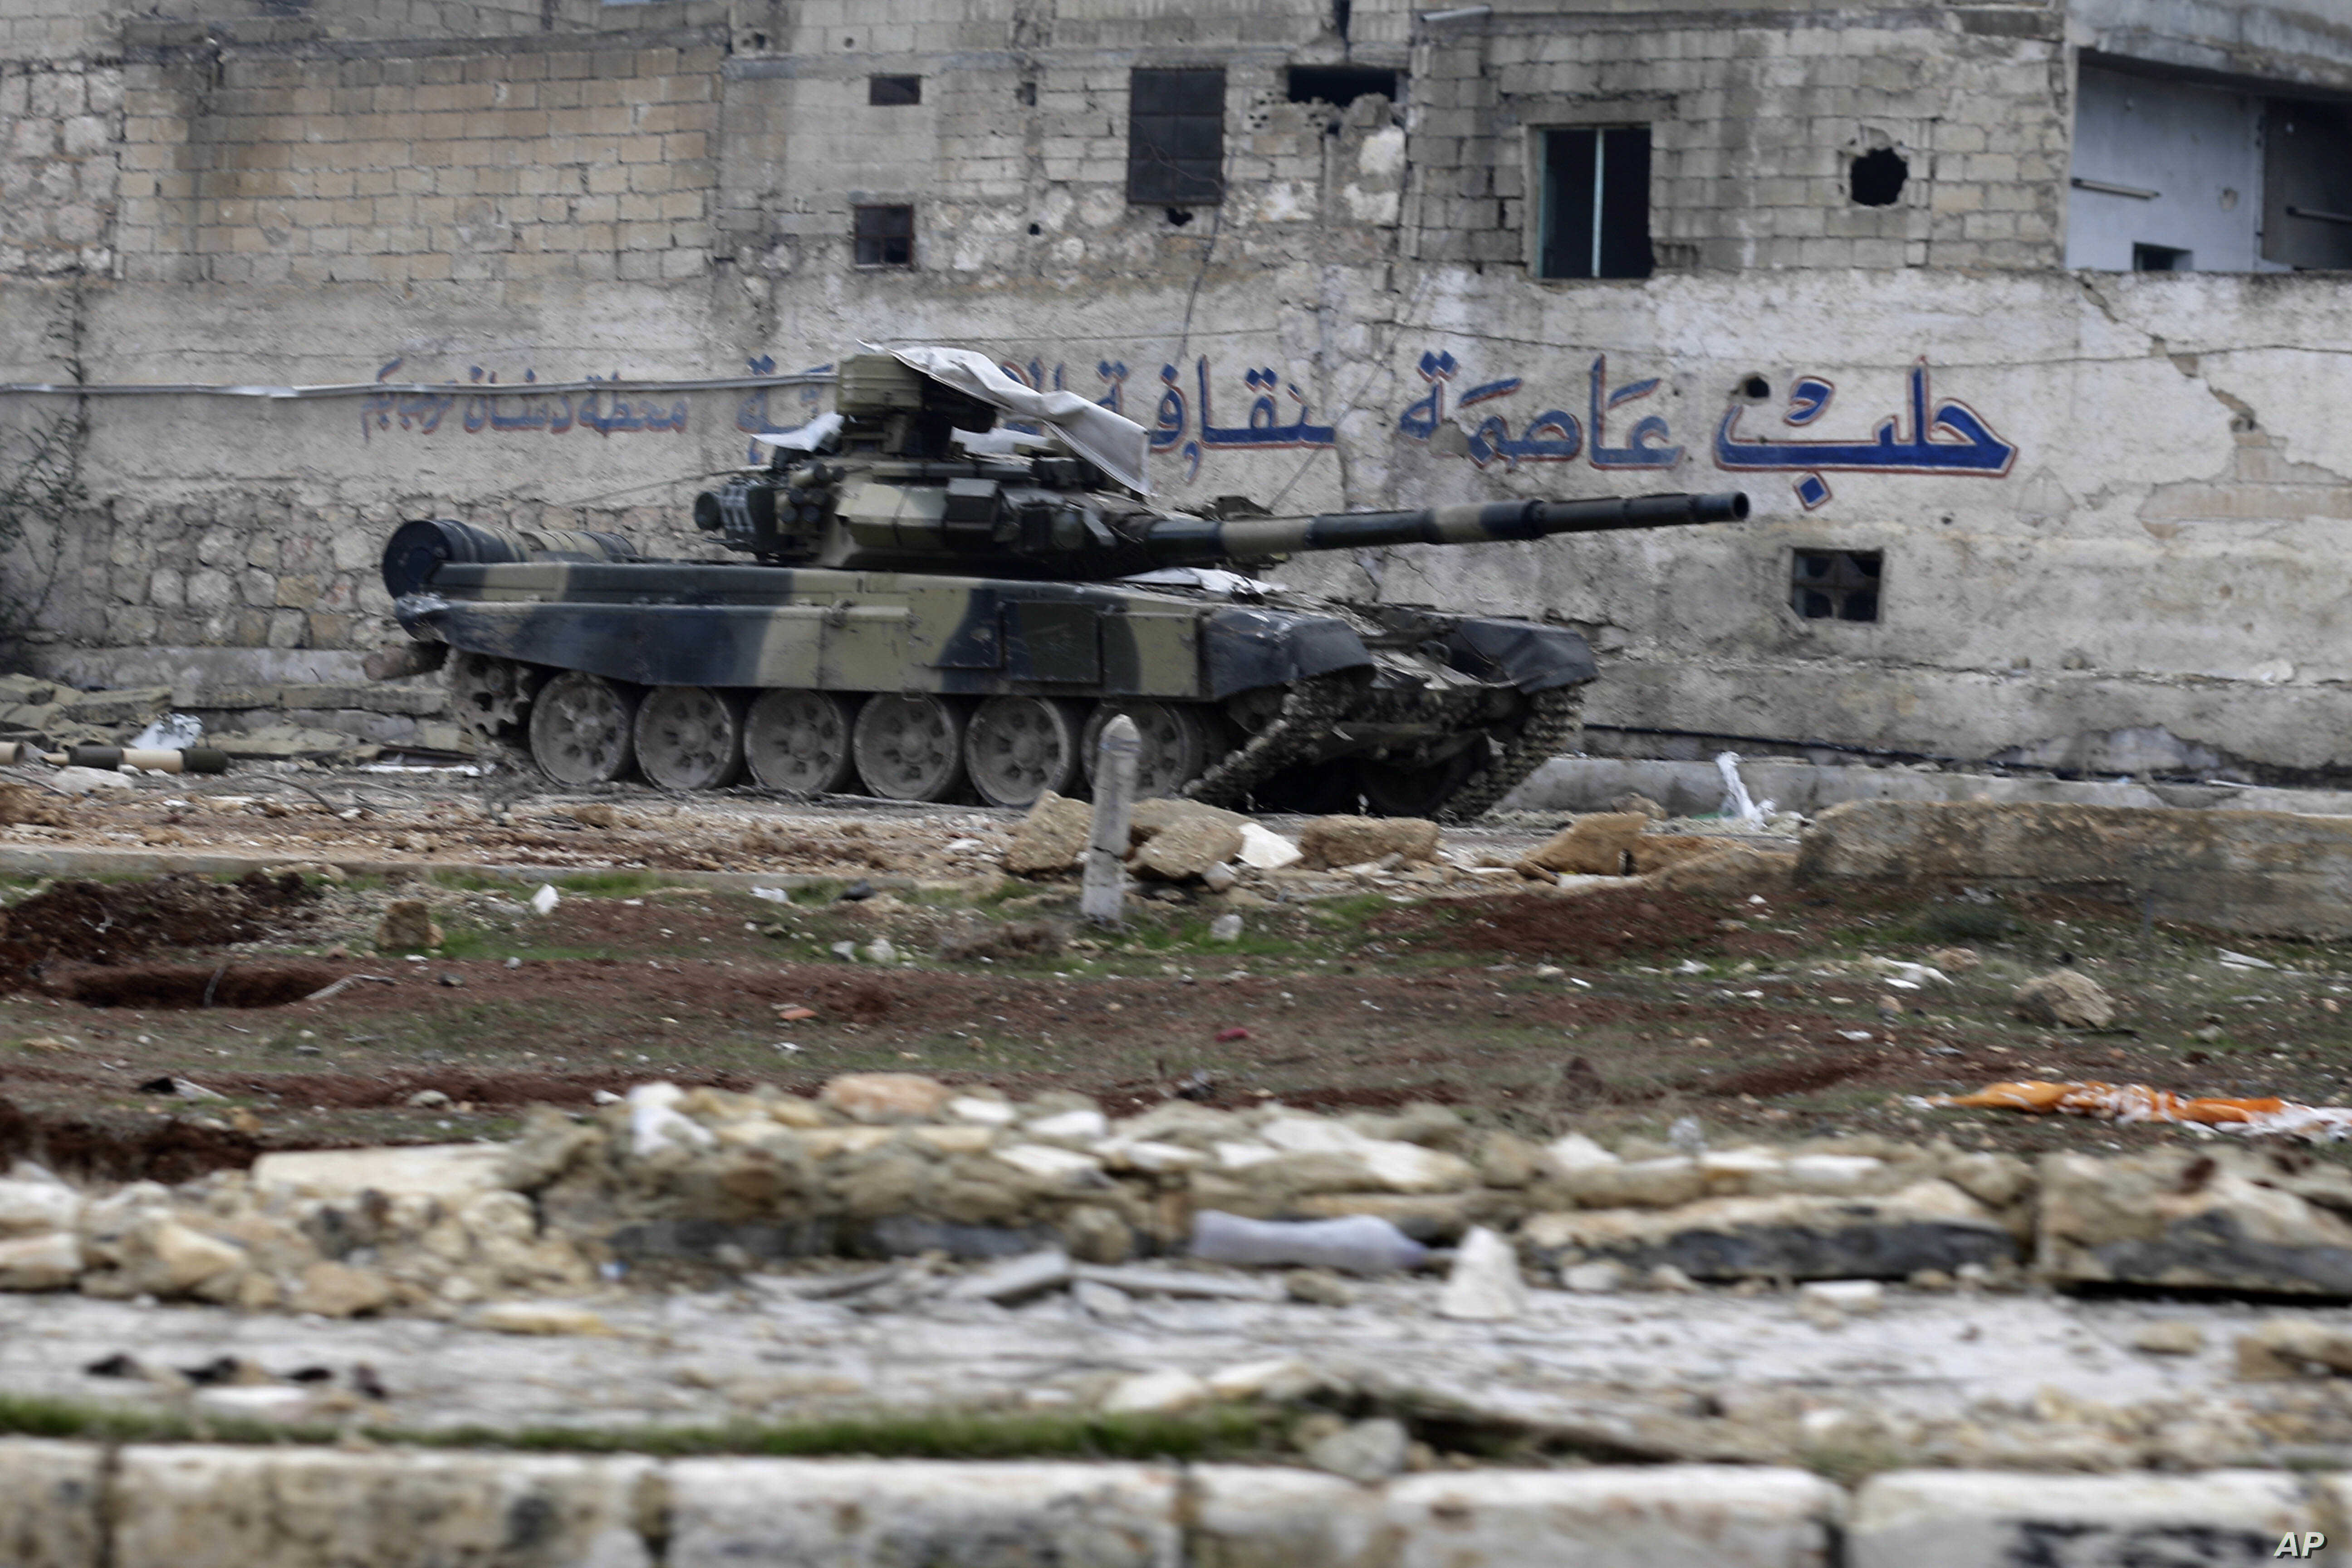 """A Syrian army tank is seen in front of a wall with Arabic that reads """"Aleppo is the capital of culture"""" in the east Aleppo neighborhood of Tariq al-Bab, Syria, Dec. 3, 2016."""